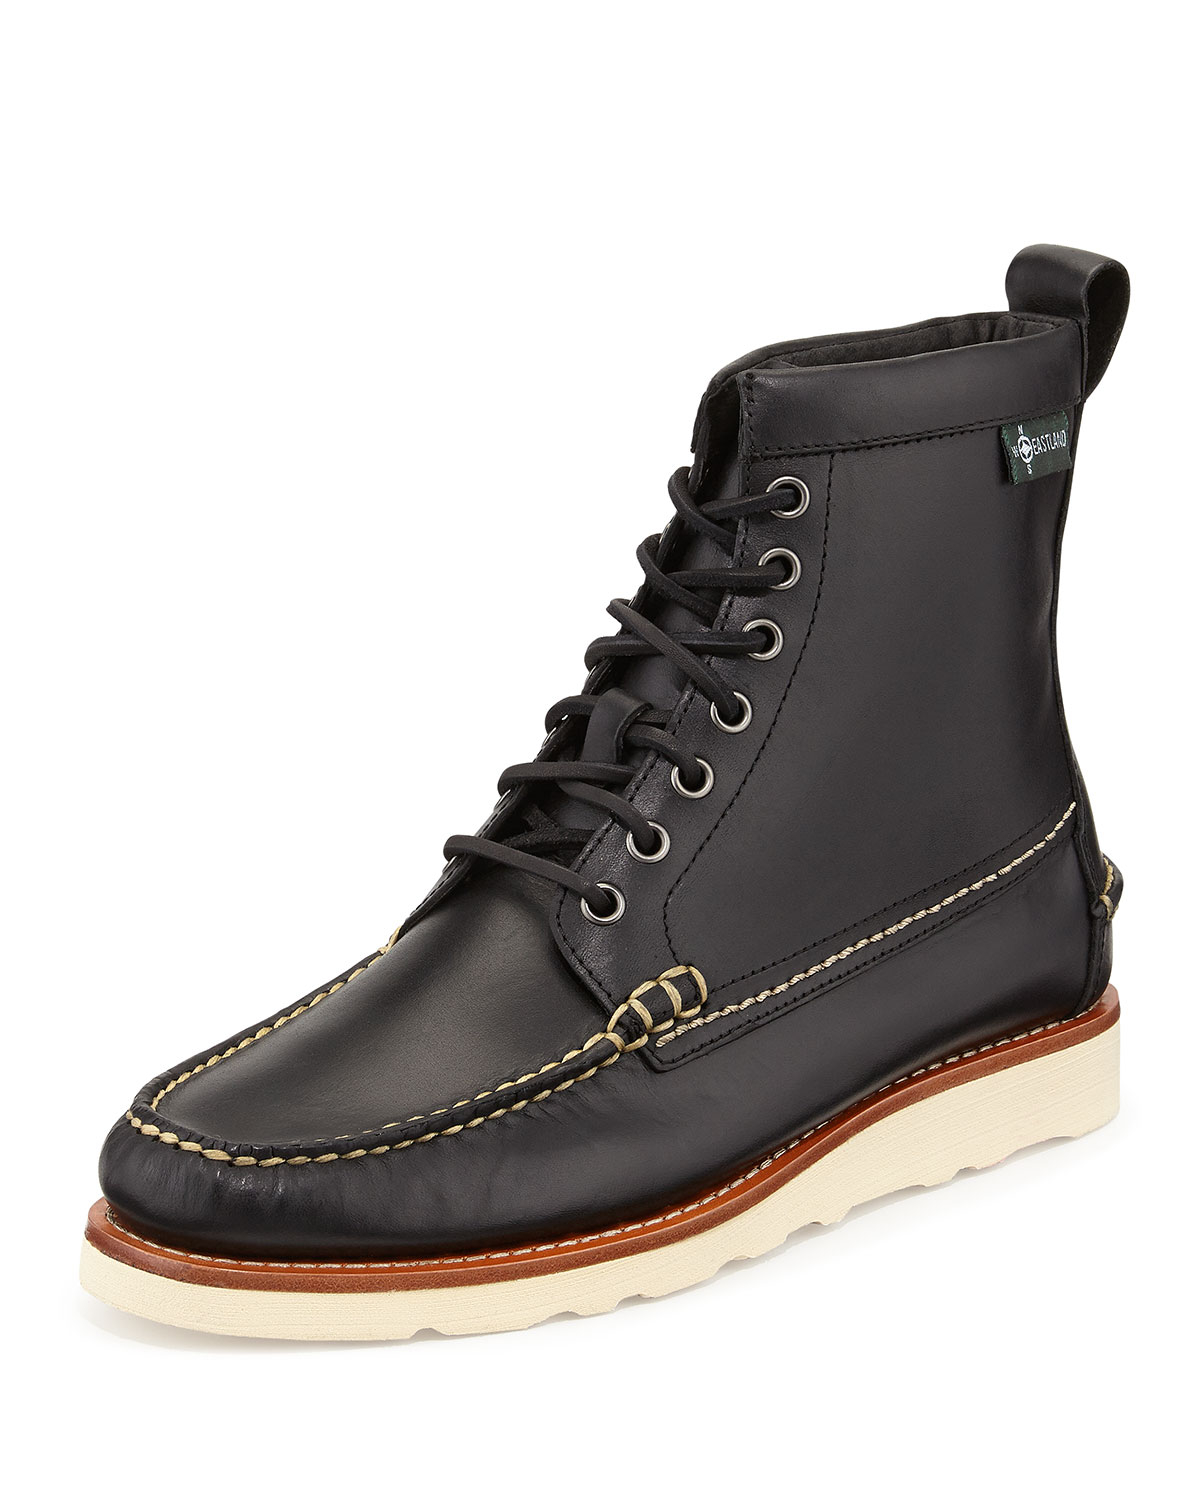 Eastland 1955 Edition Sherman 1955 Leather Boot In Black